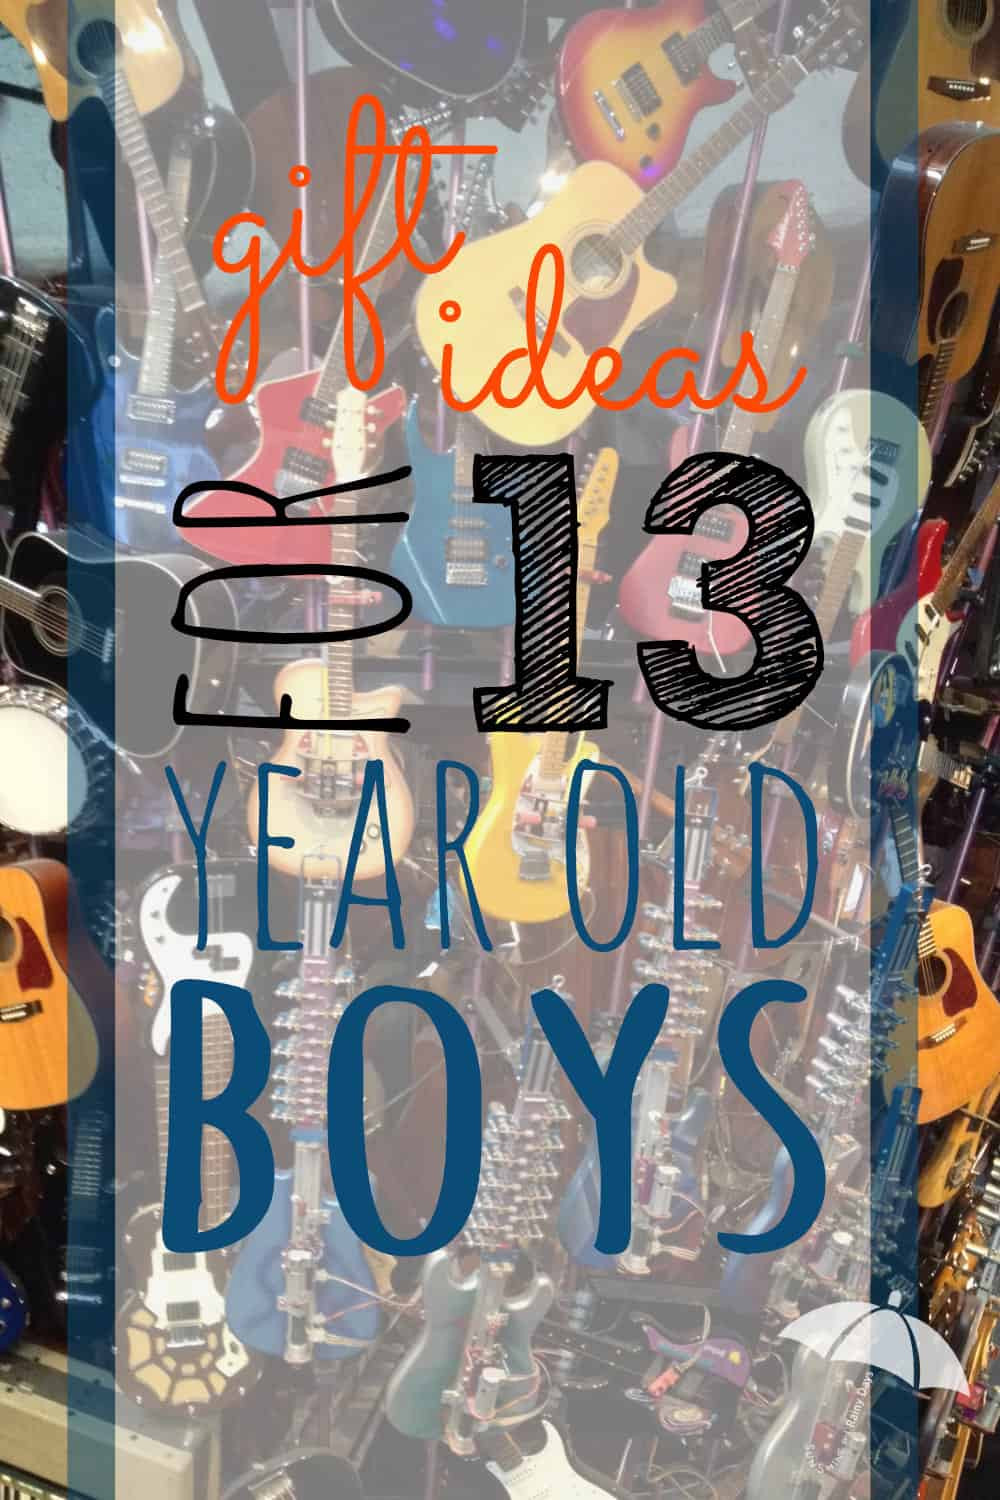 Gift Ideas 13 Year Old Boys  Gift Ideas for 13 Year Old Boys Sunshine and Rainy Days